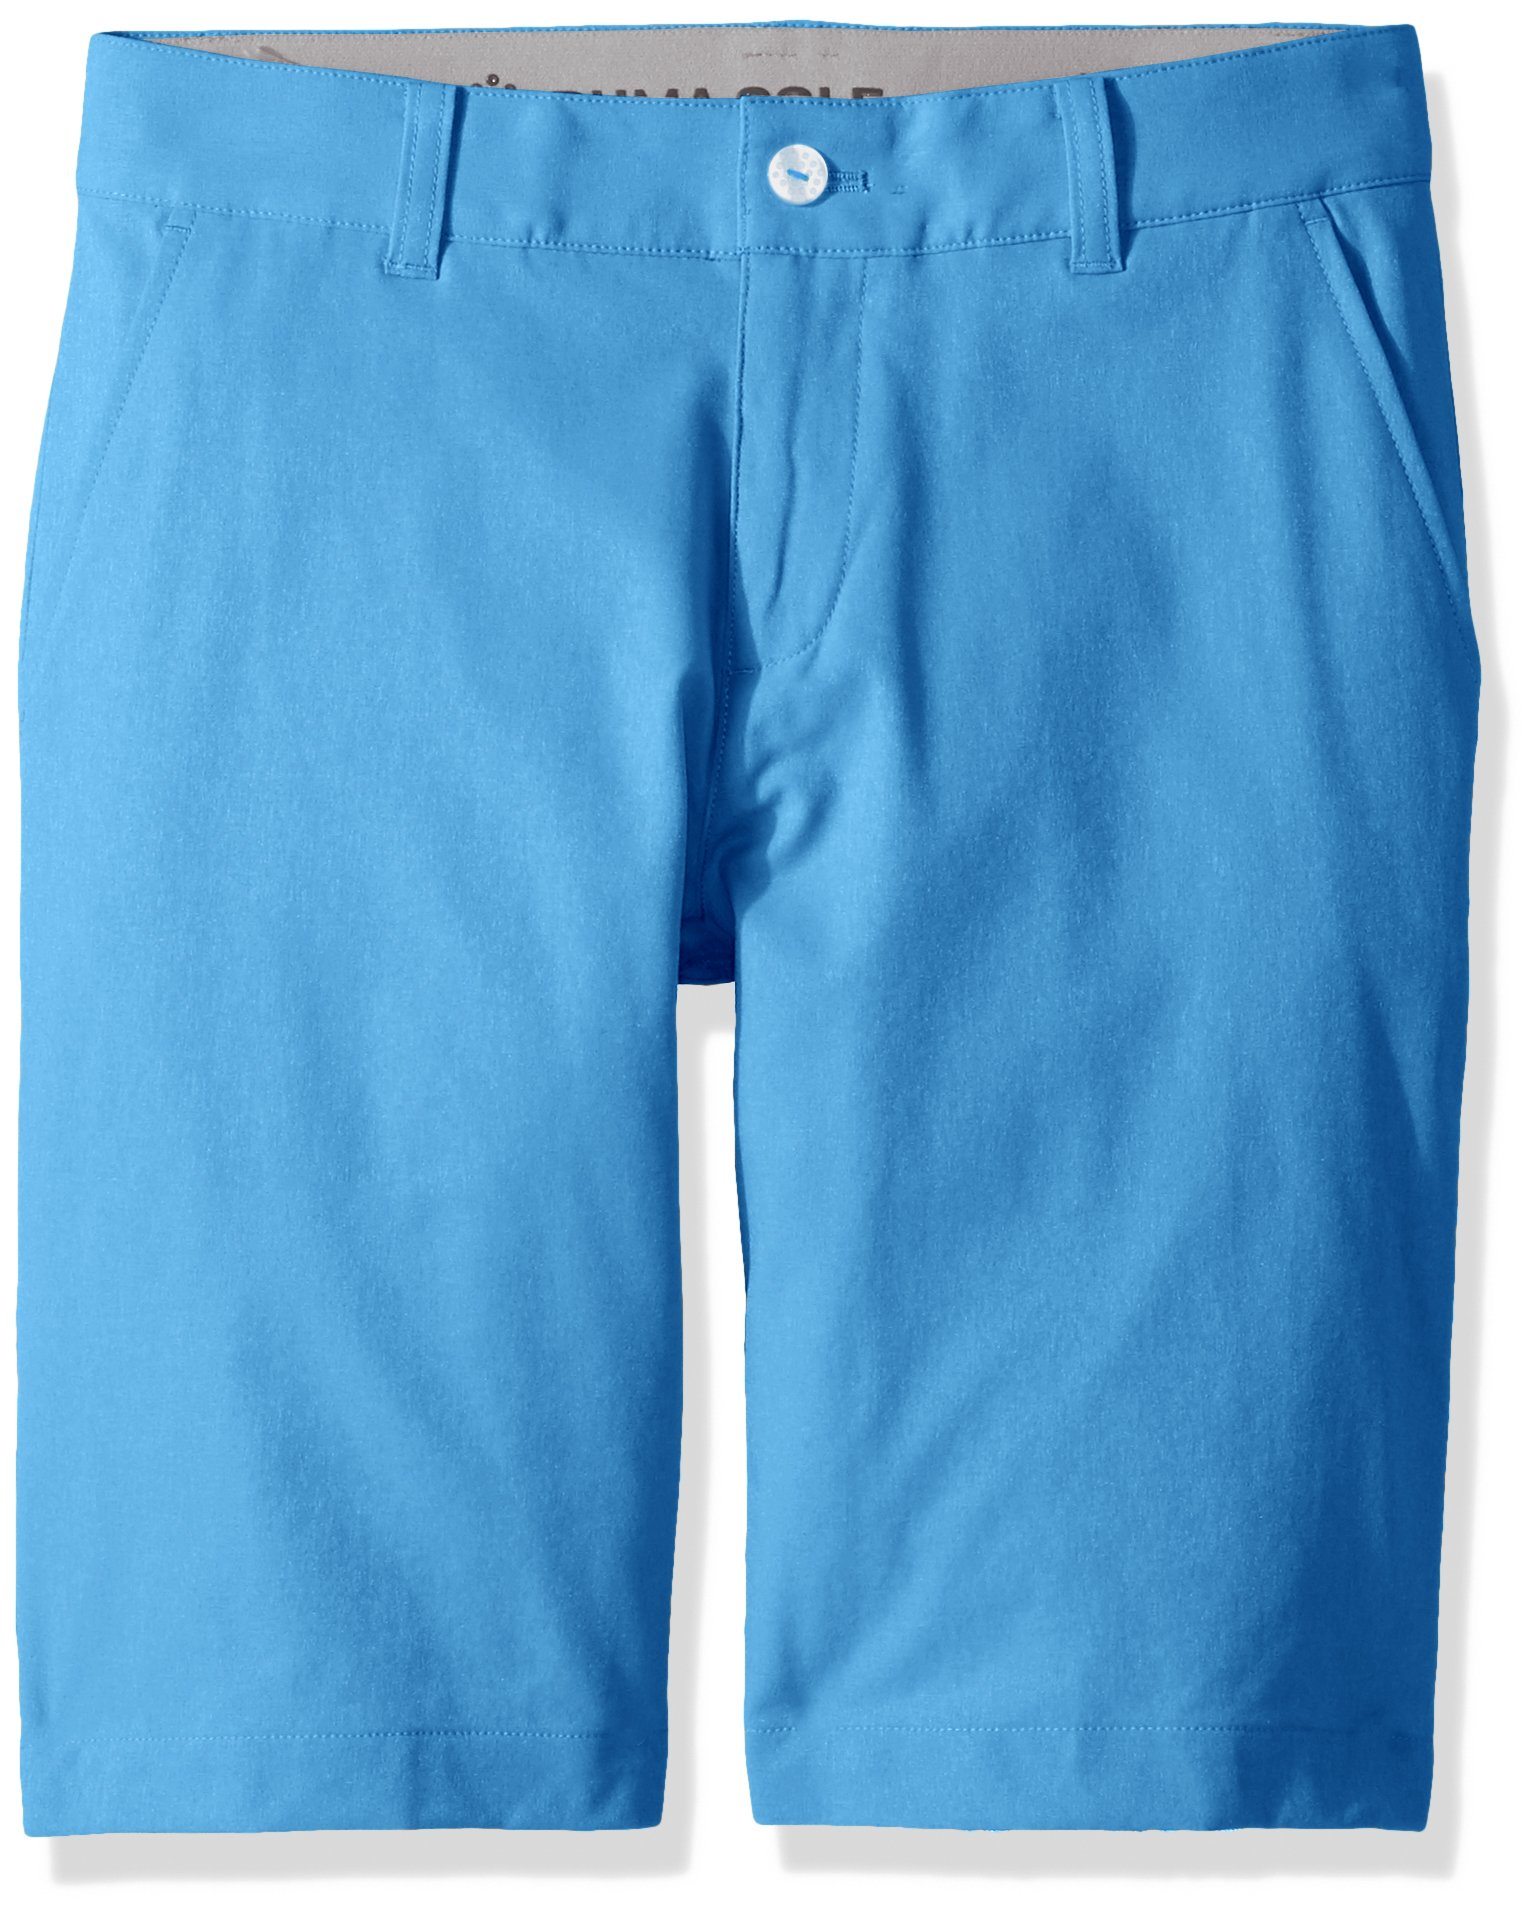 PUMA Golf Teen 2018 Boy's Heather Pounce Short, Marina, Small by PUMA